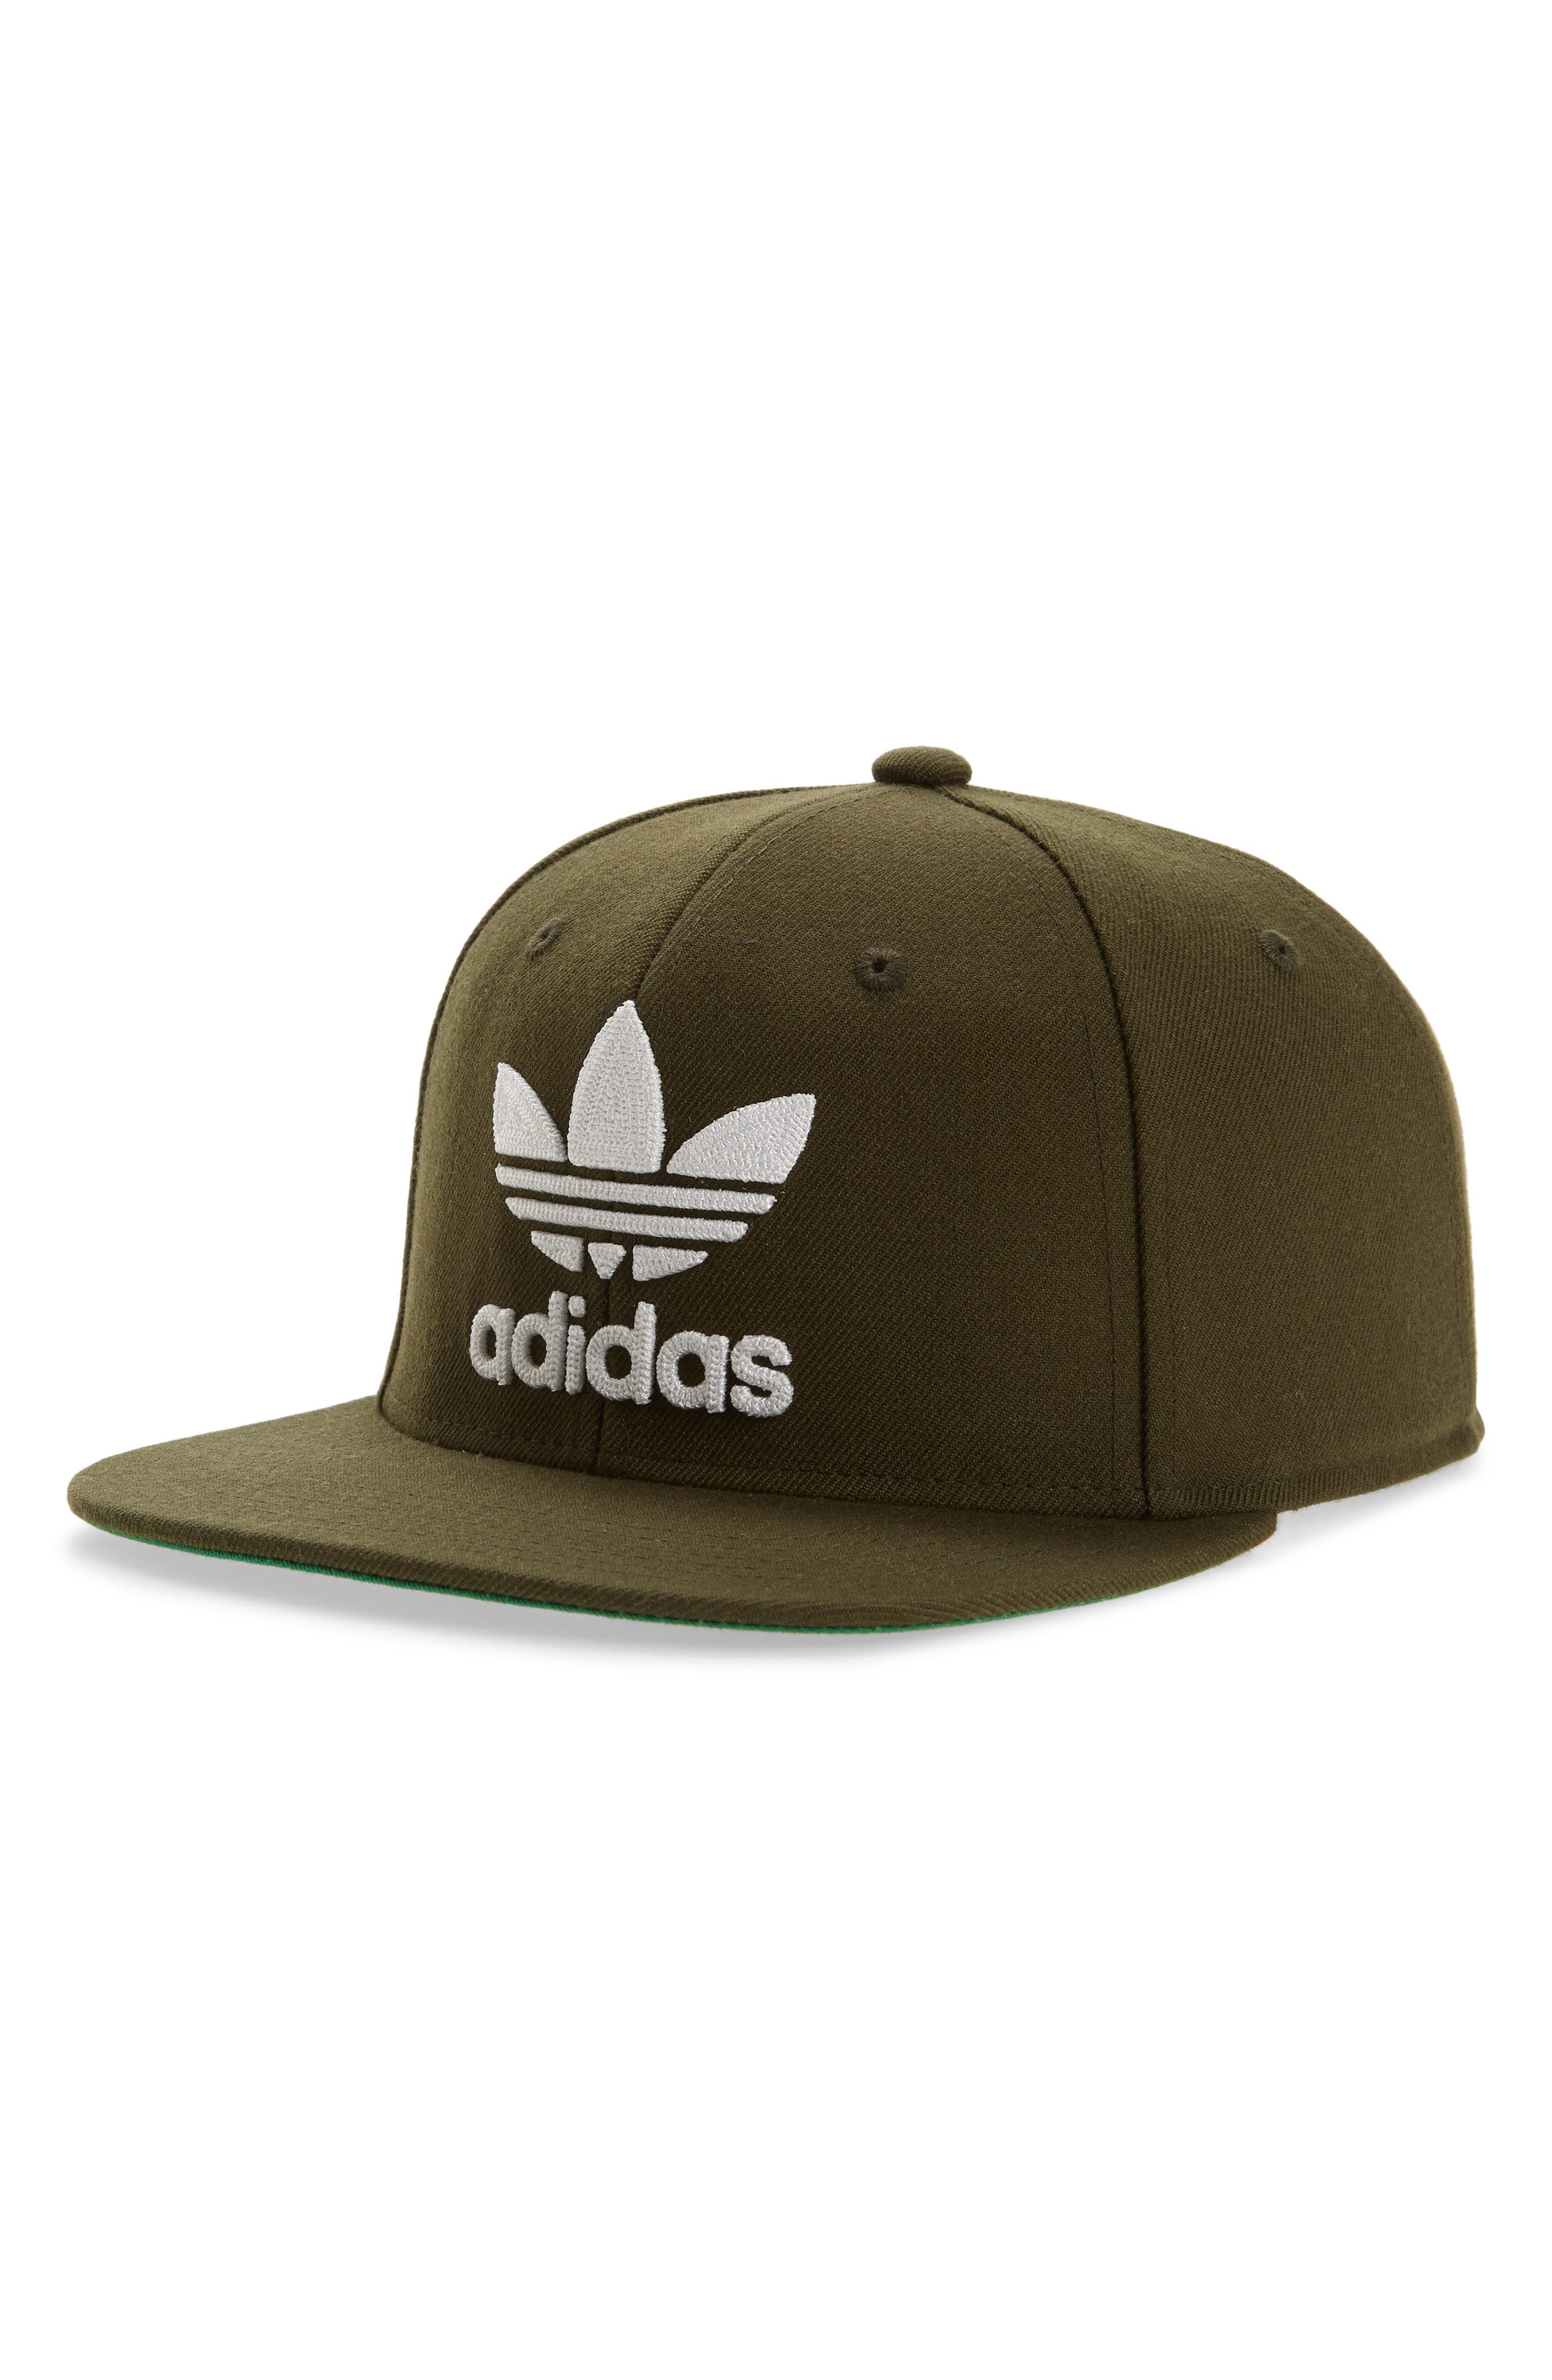 2a8f3bffd4d Men s Adidas Originals Hats